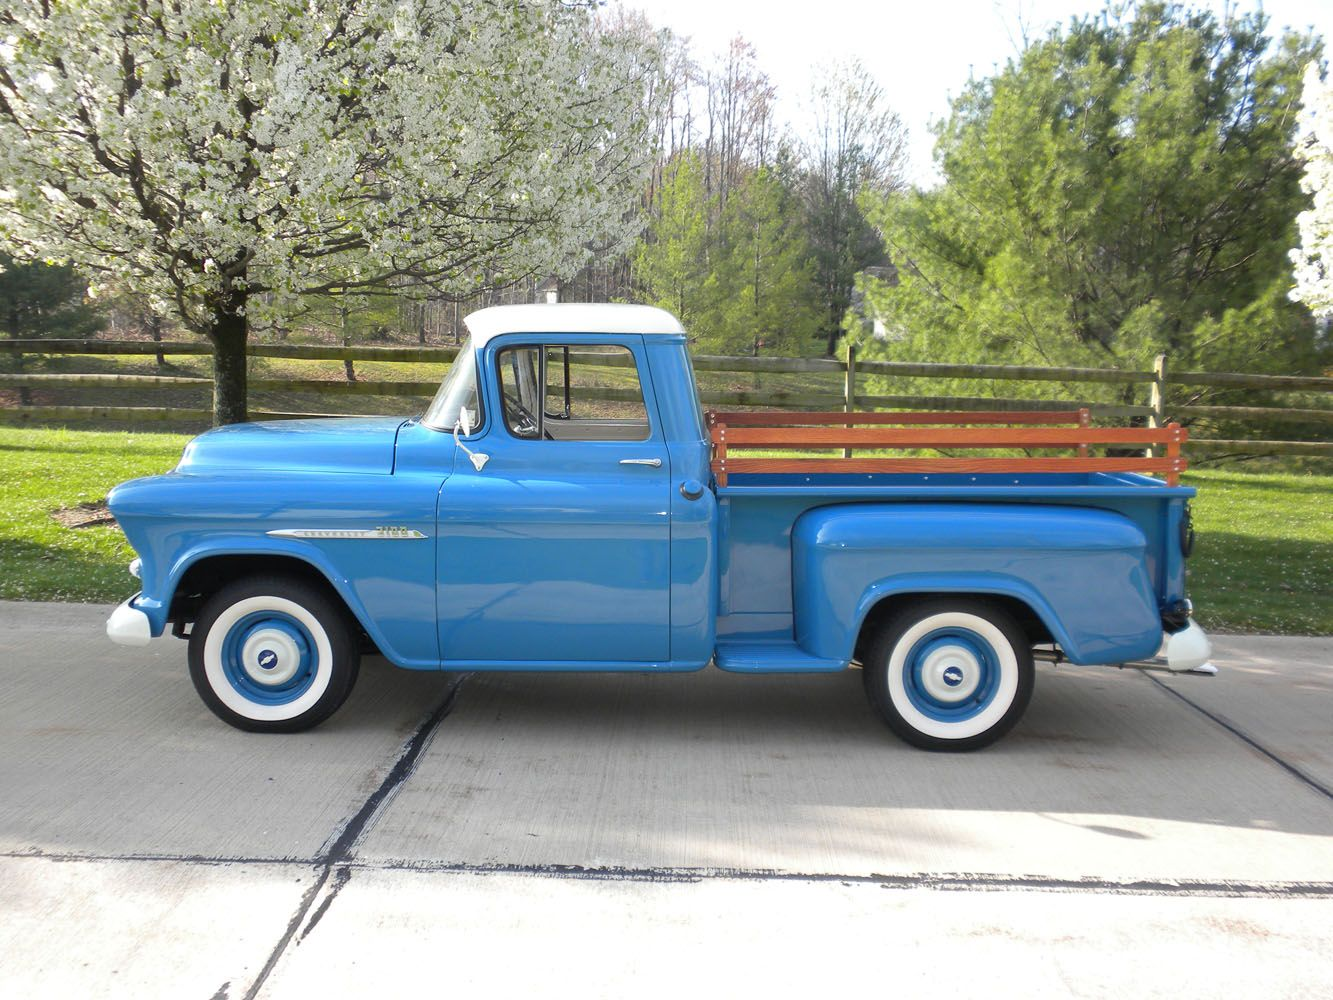 1955 Second Series Chevy Gmc Pickup Truck Chevy Trucks Classic